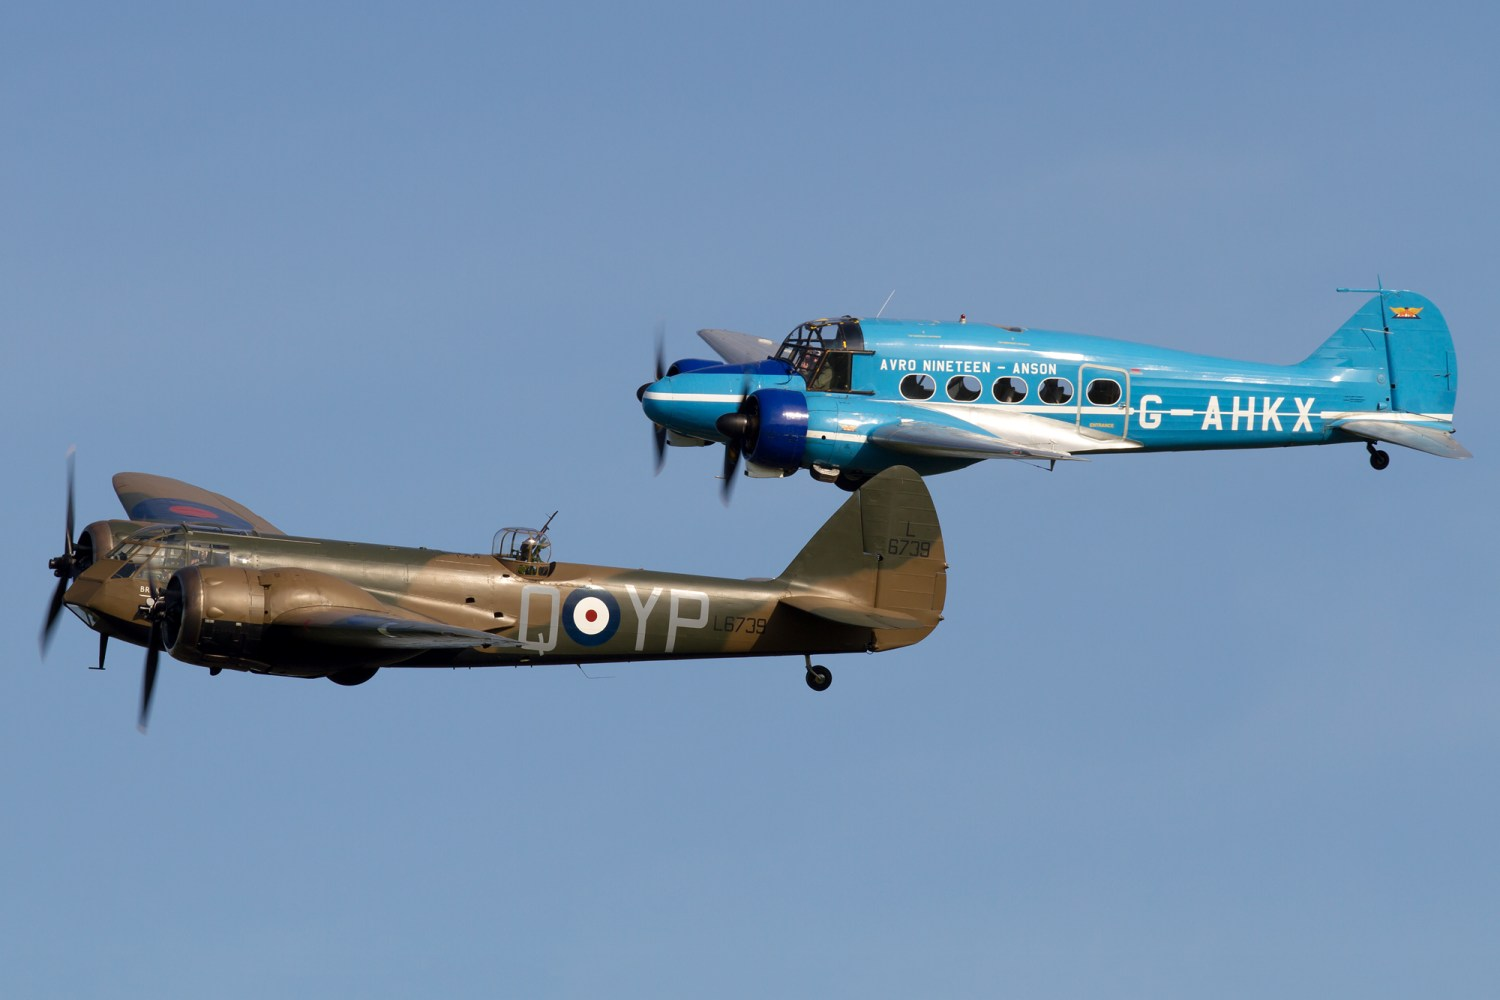 © Michael Lovering - Bristol Blenheim Mk.I and Avro 19 - Shuttleworth Season Premiere Airshow 2016